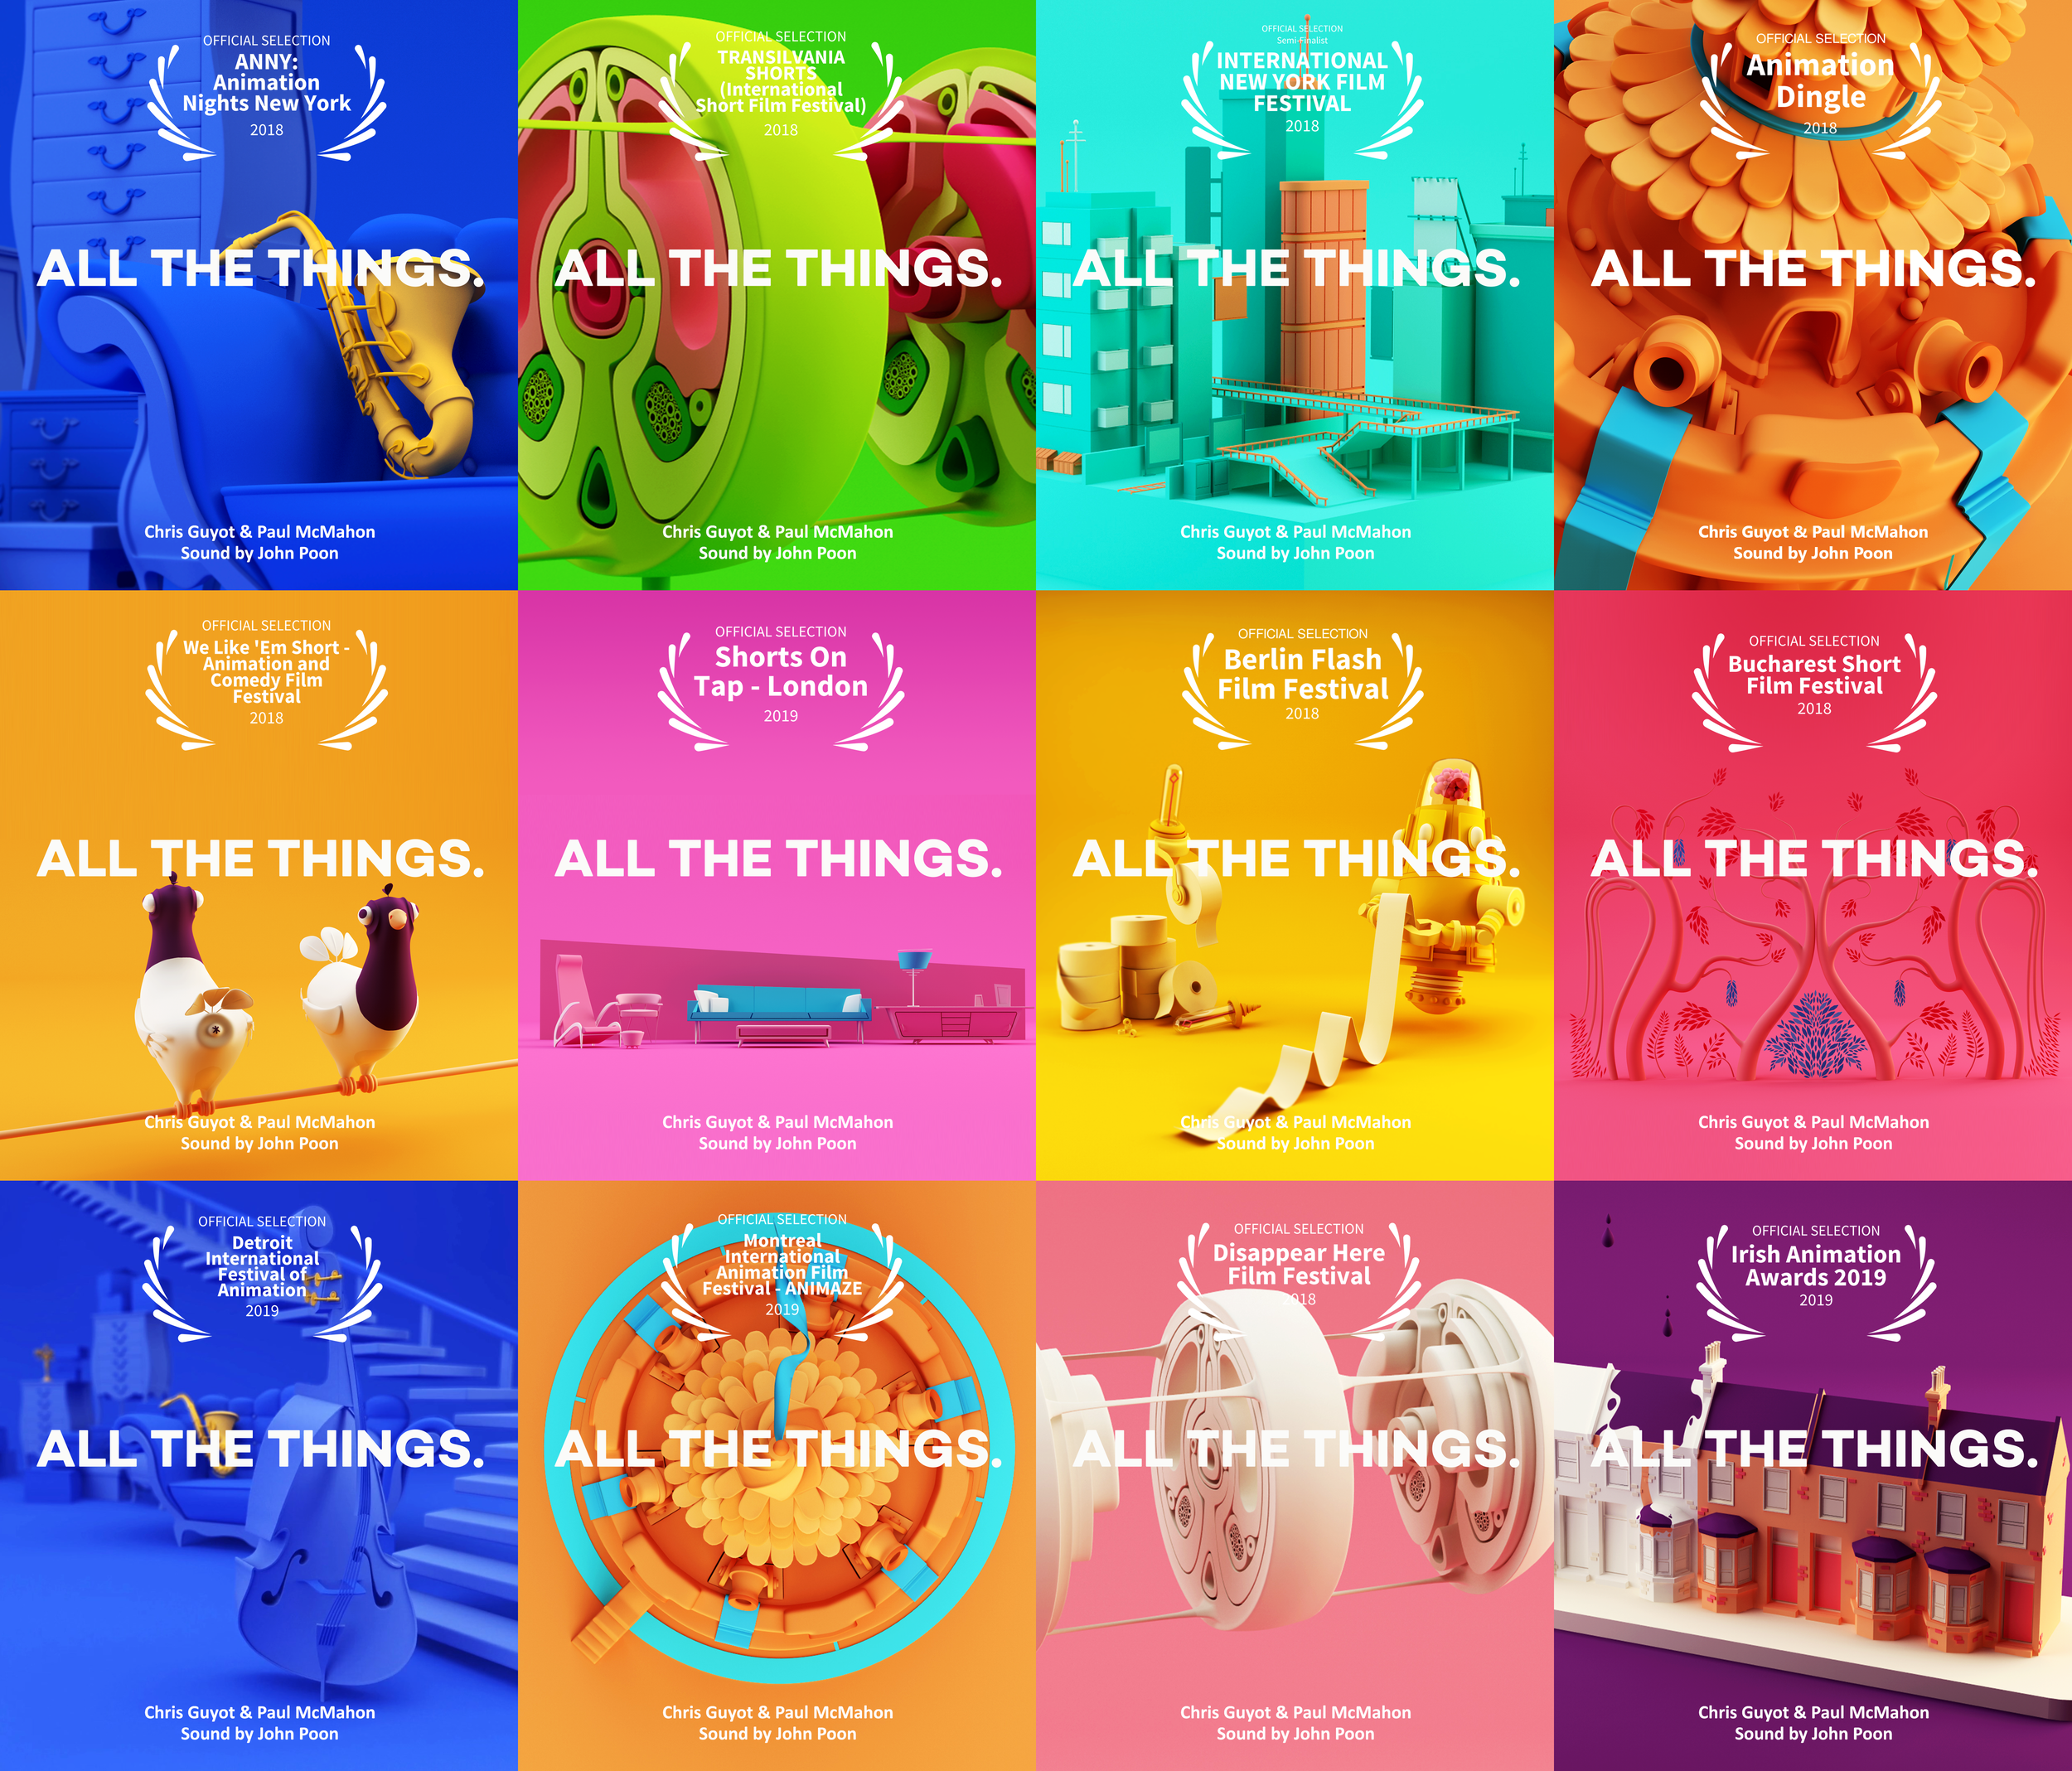 All the Things_All awards_image